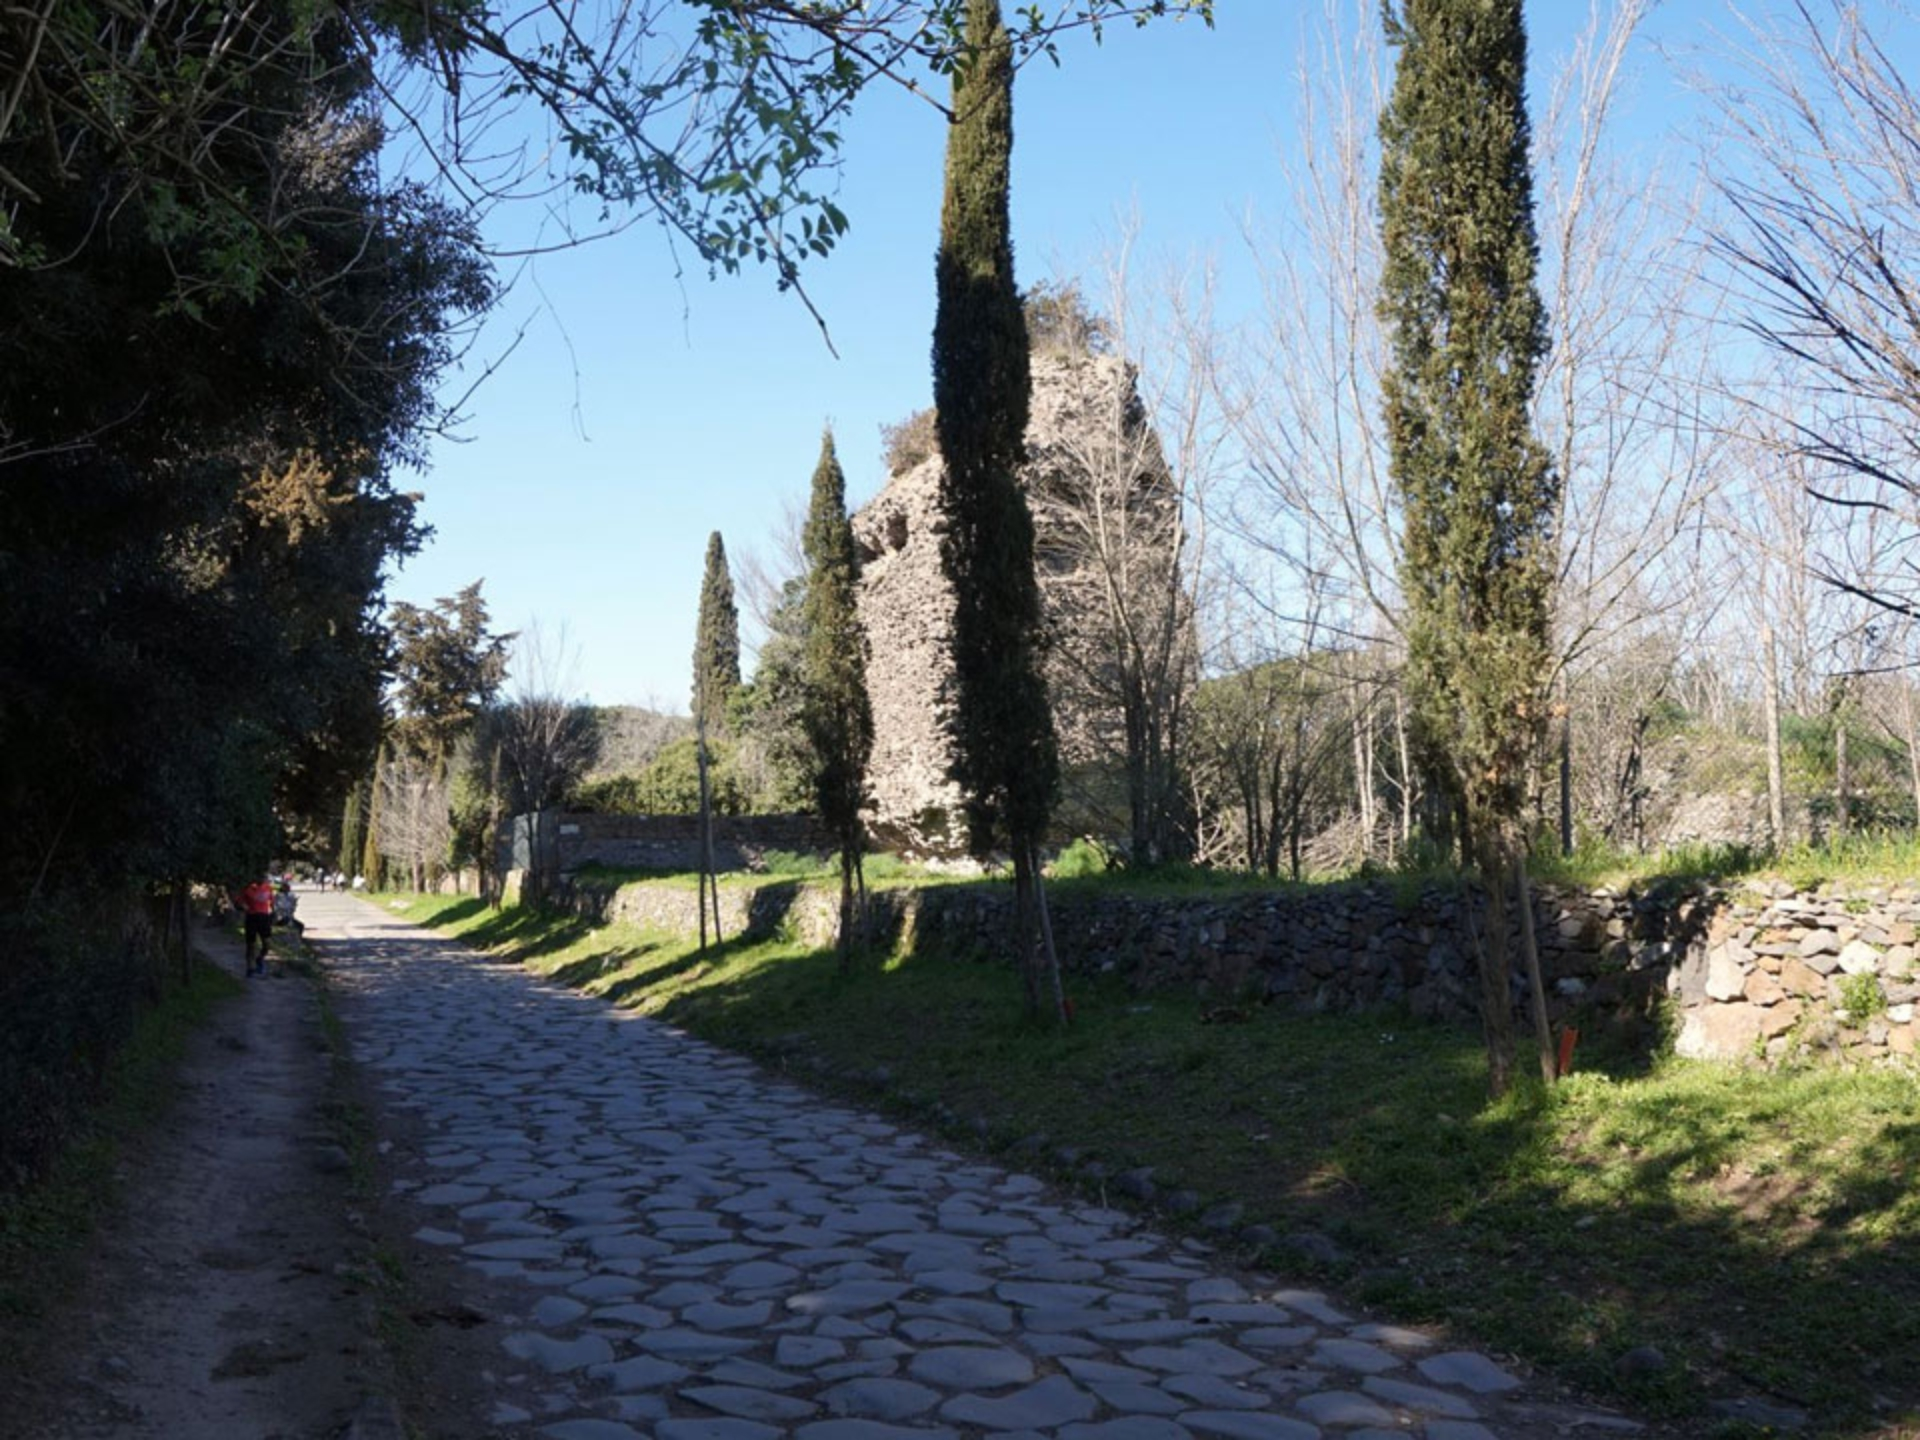 appian-way_Italy-Tour-With-Theresa_17